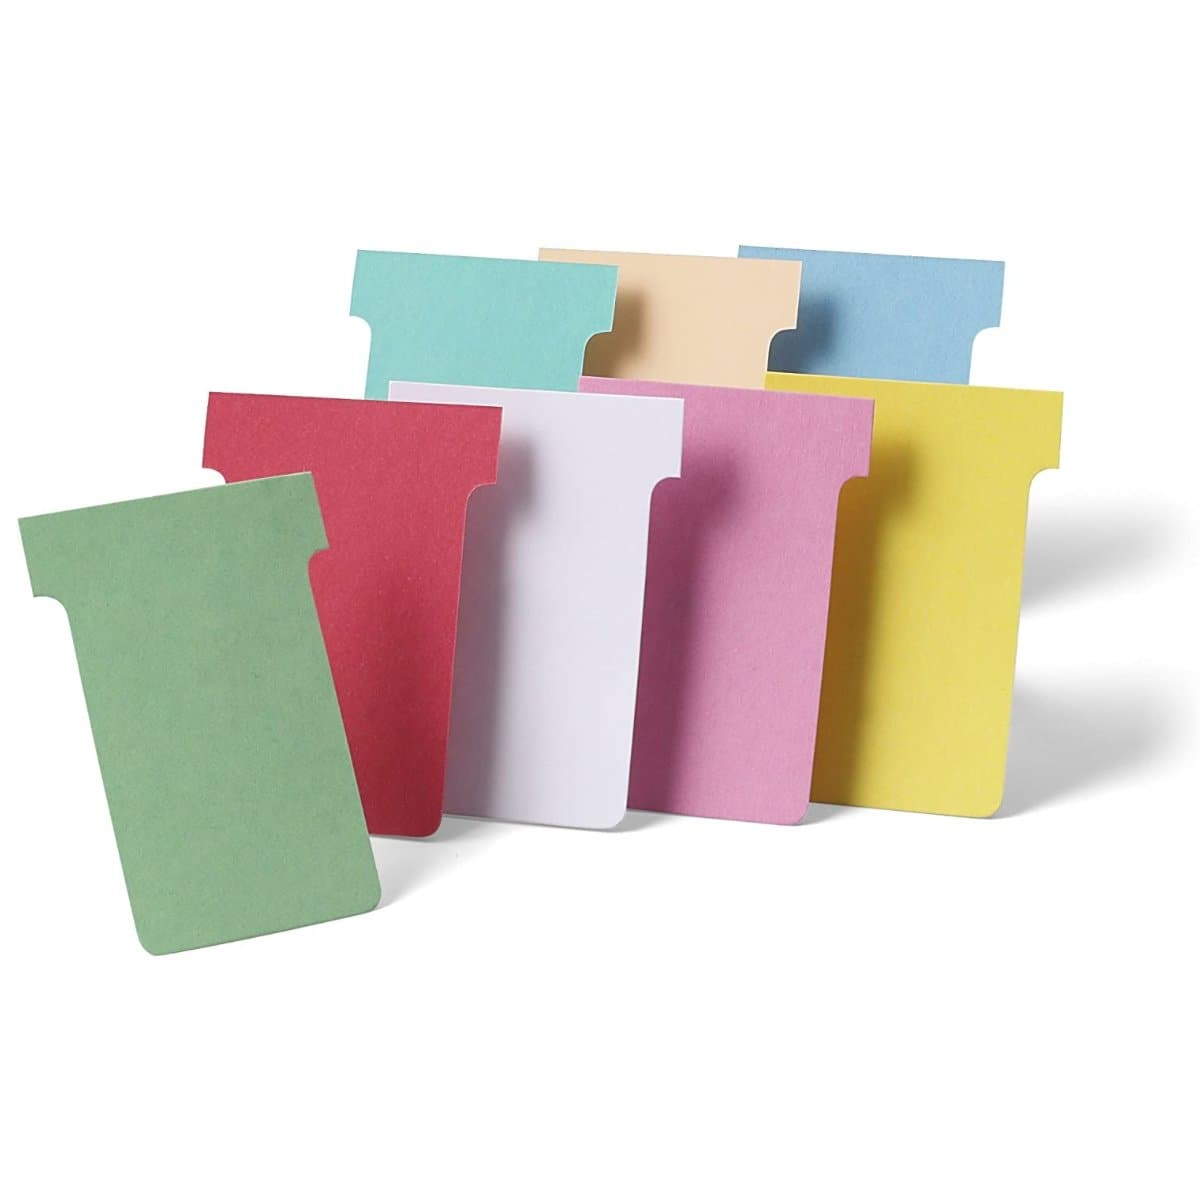 Nobo T-Cards Size 2, 48 x 85 mm, 100/pack, various colors